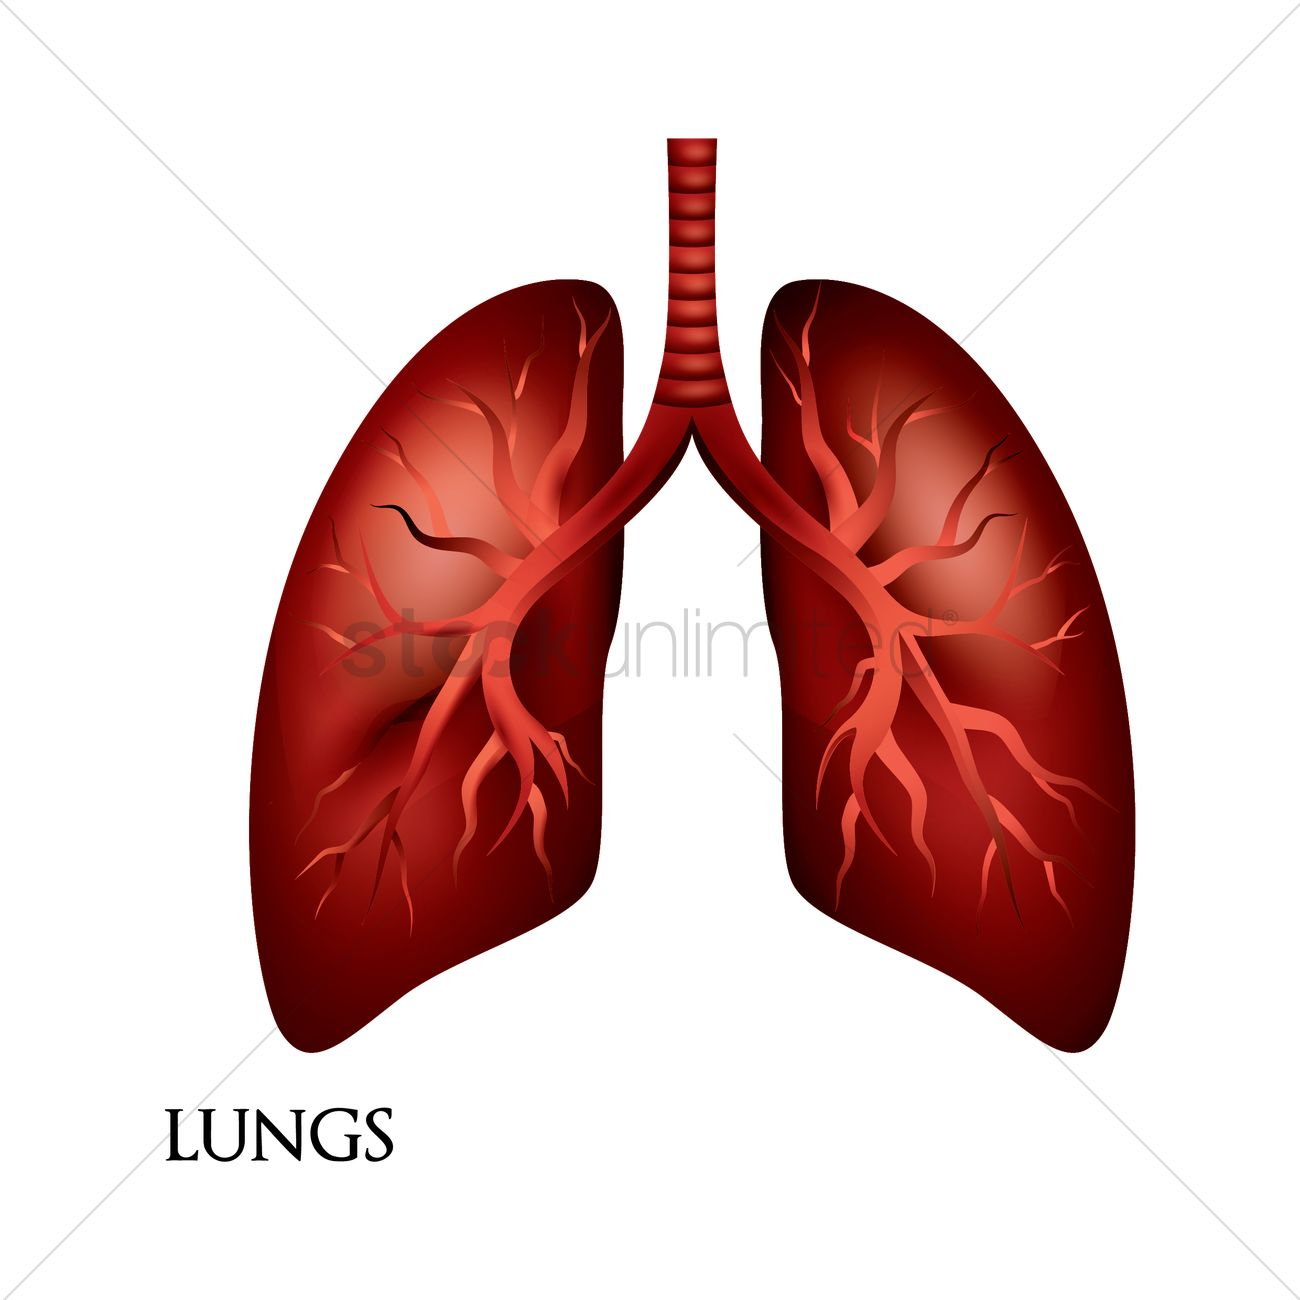 Lungs Vector Image - 1807890 | StockUnlimited